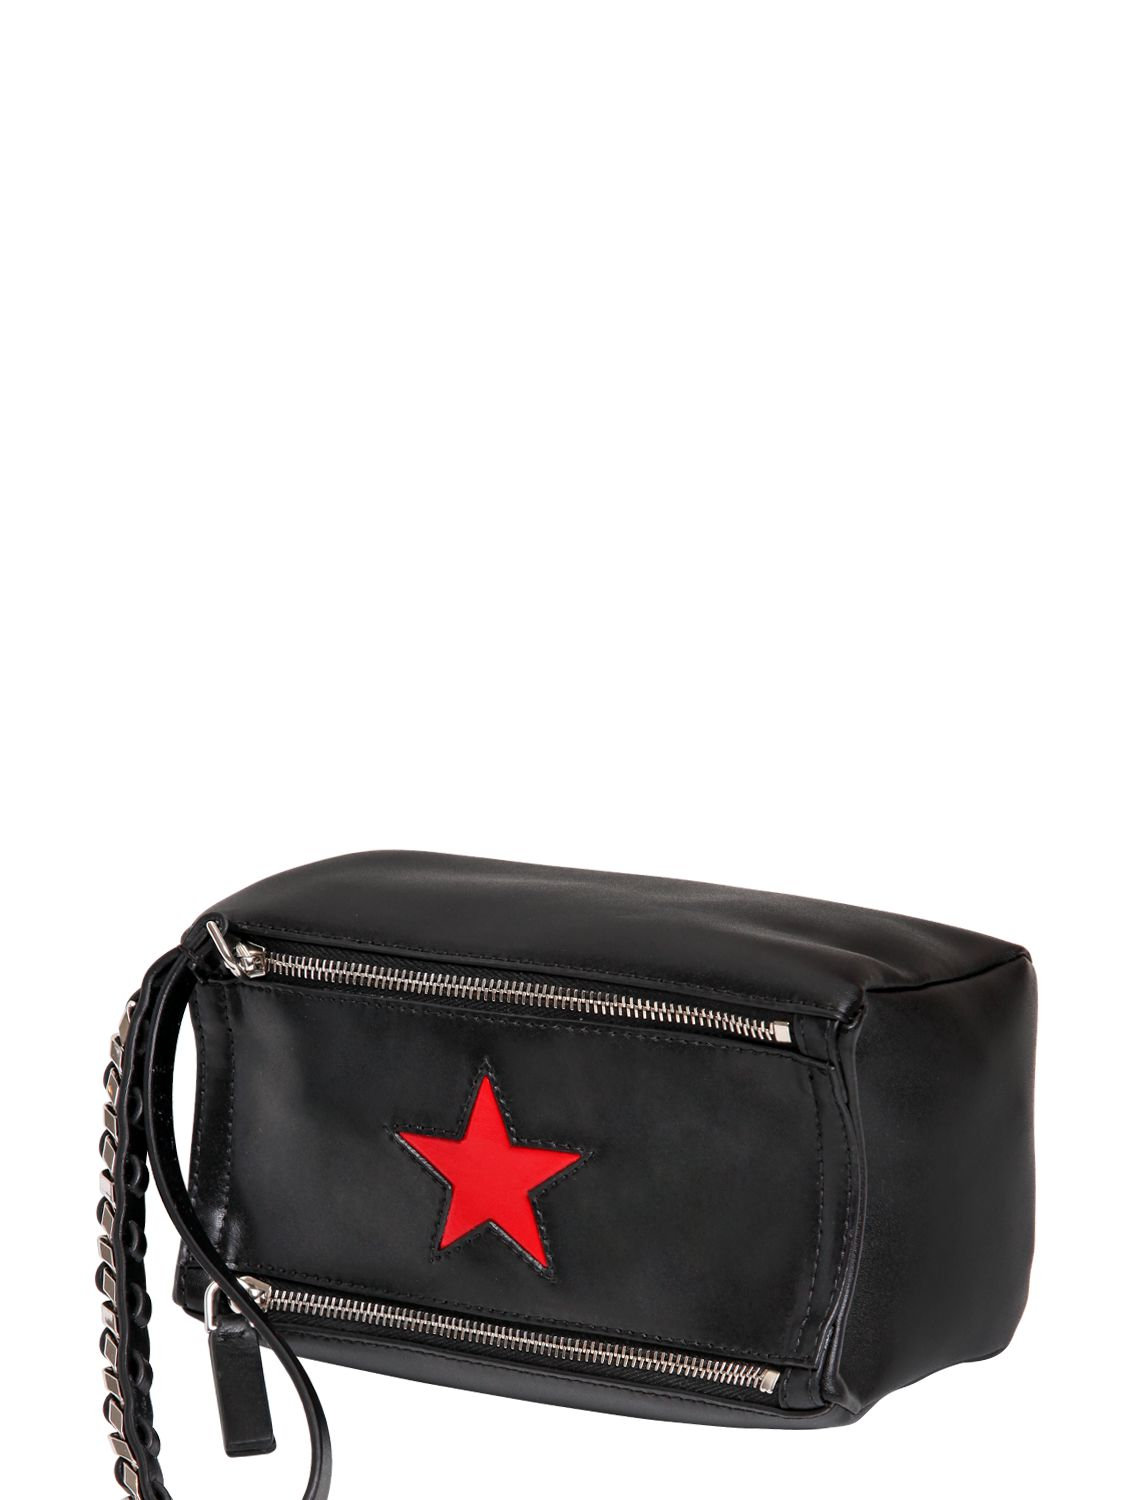 f5a9aa92177e Lyst - Givenchy Pandora Wristlet Leather Bag With Star in Black for Men